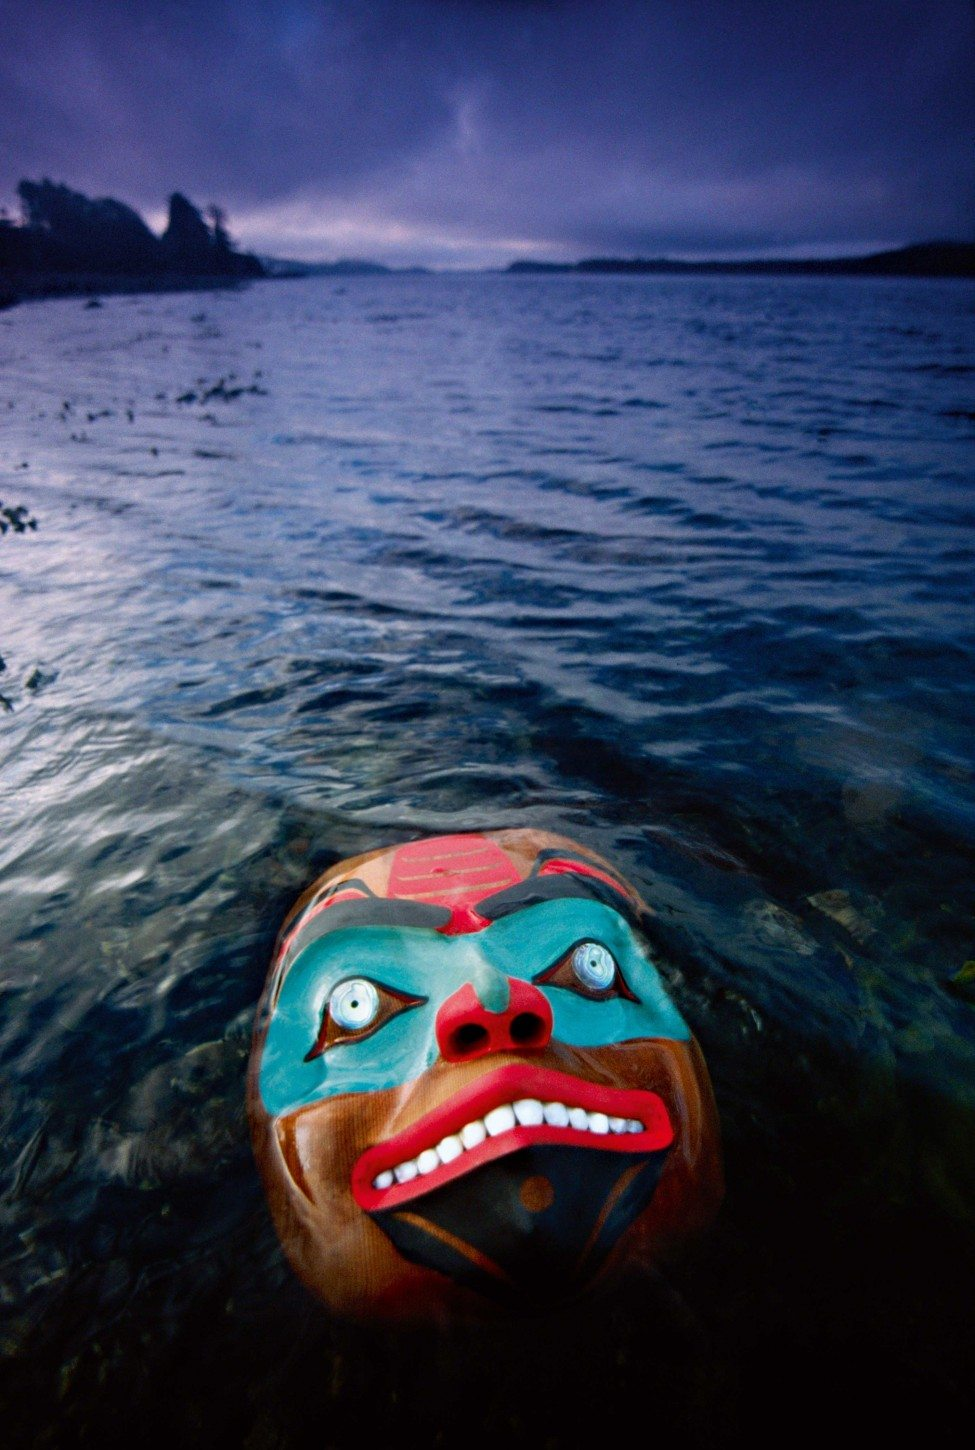 Shark mask by Haida artist Reg Davidson, Queen Charlotte Island, British Columbia, Canada.<br />